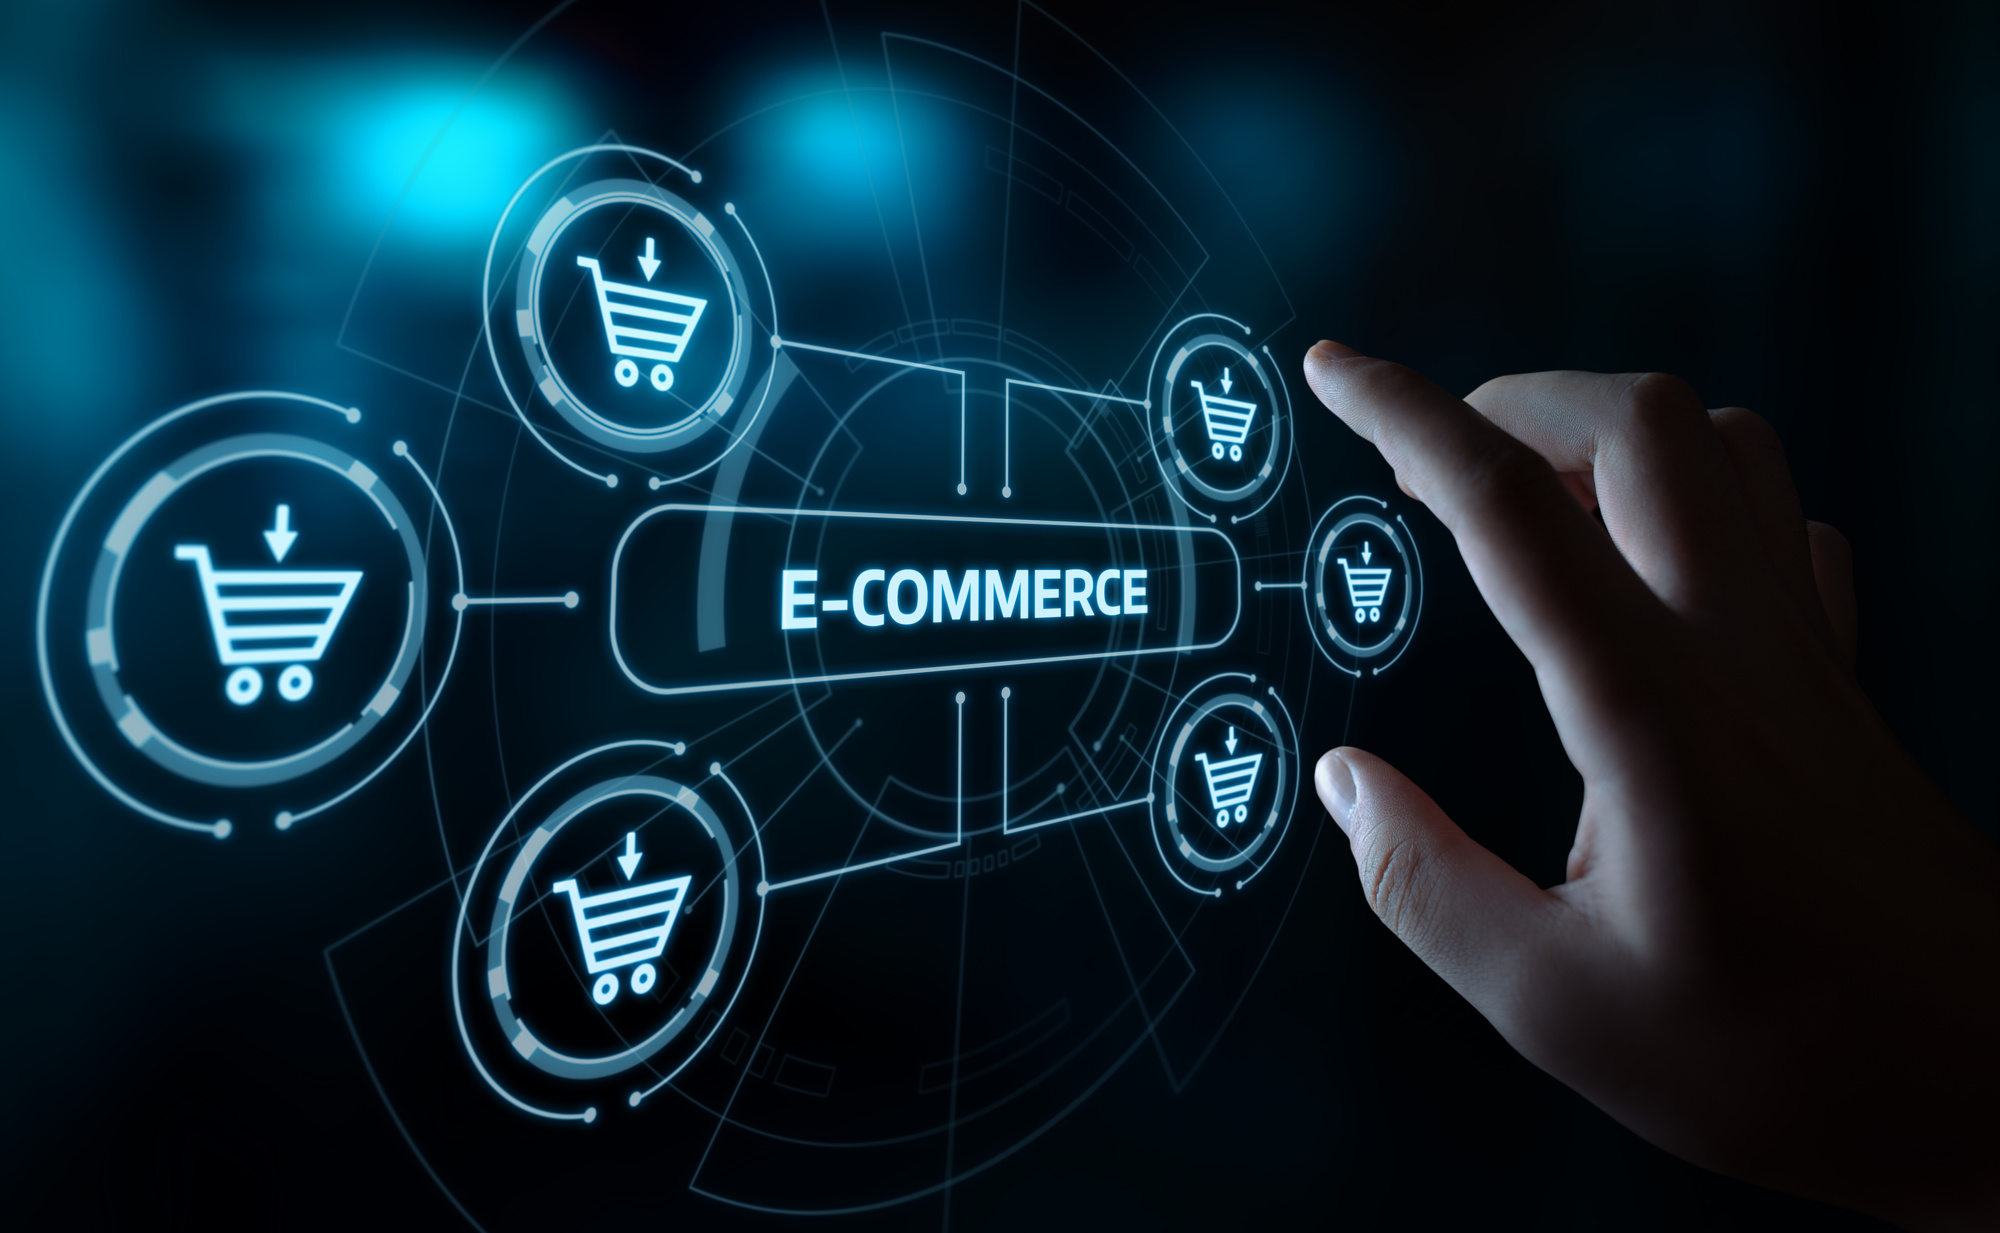 ecommerce icons and text